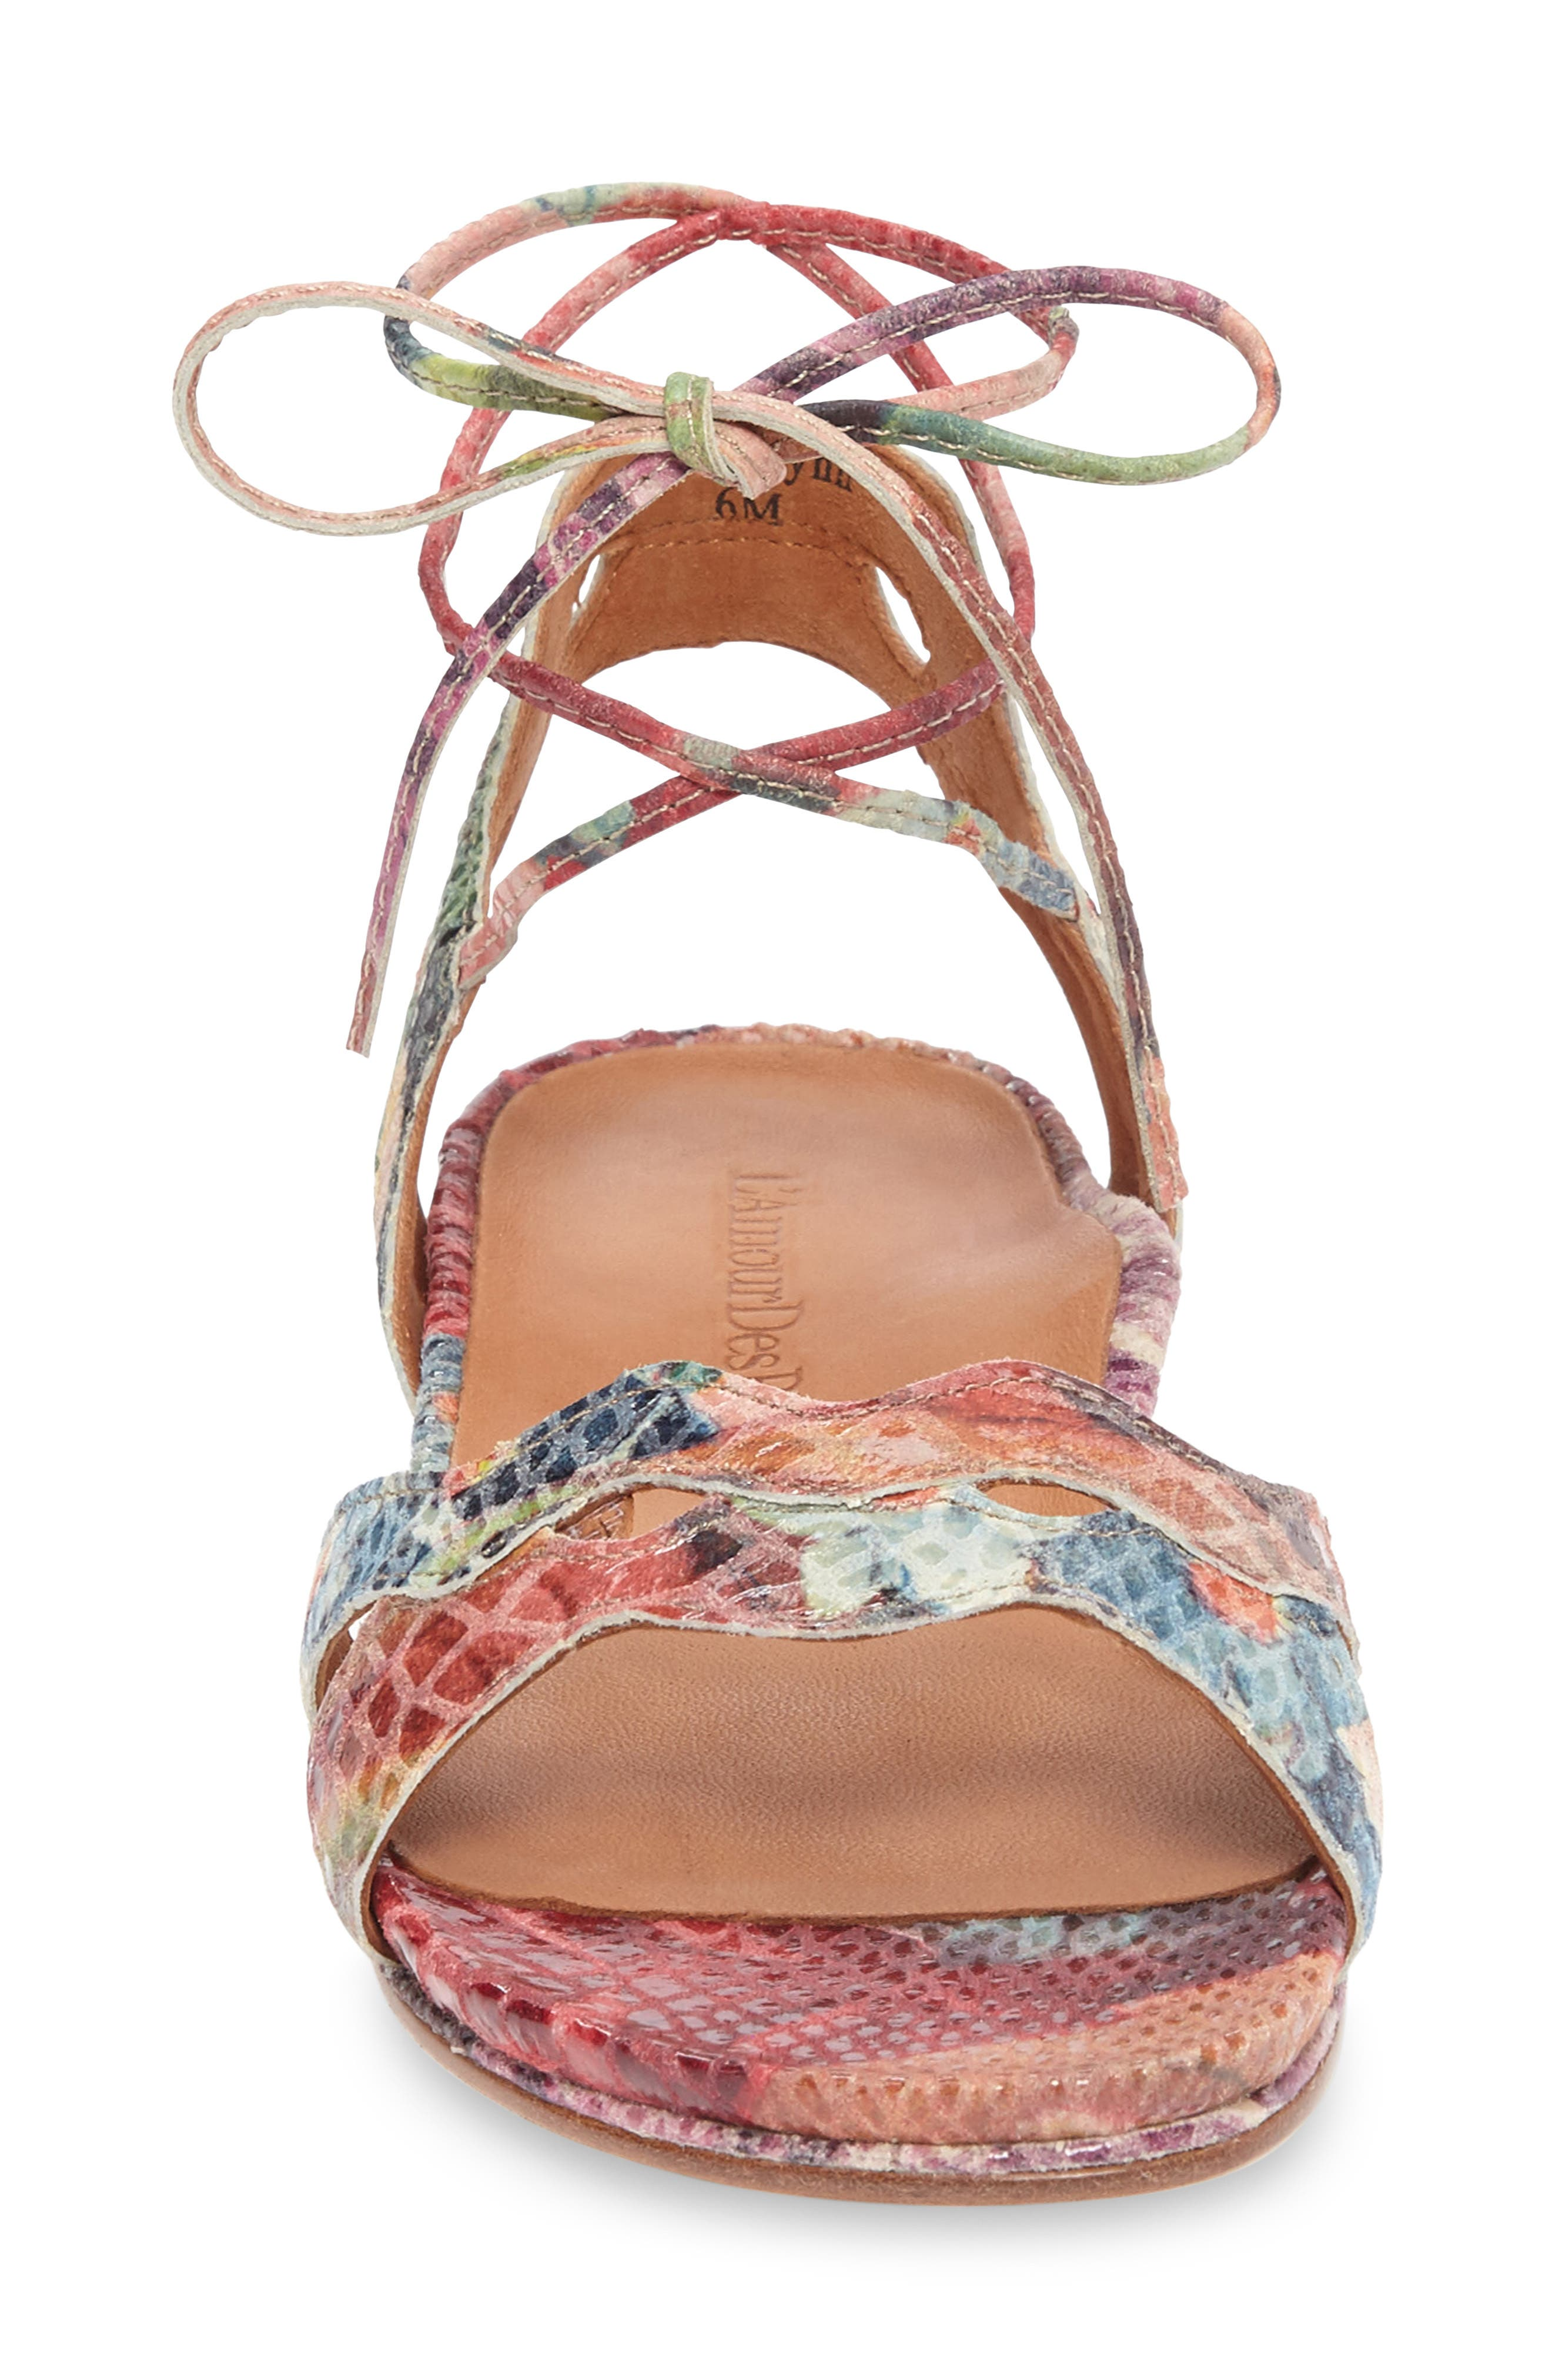 Darrylynn Wraparound Lace-Up Sandal,                             Alternate thumbnail 3, color,                             Bright Multi Printed Leather